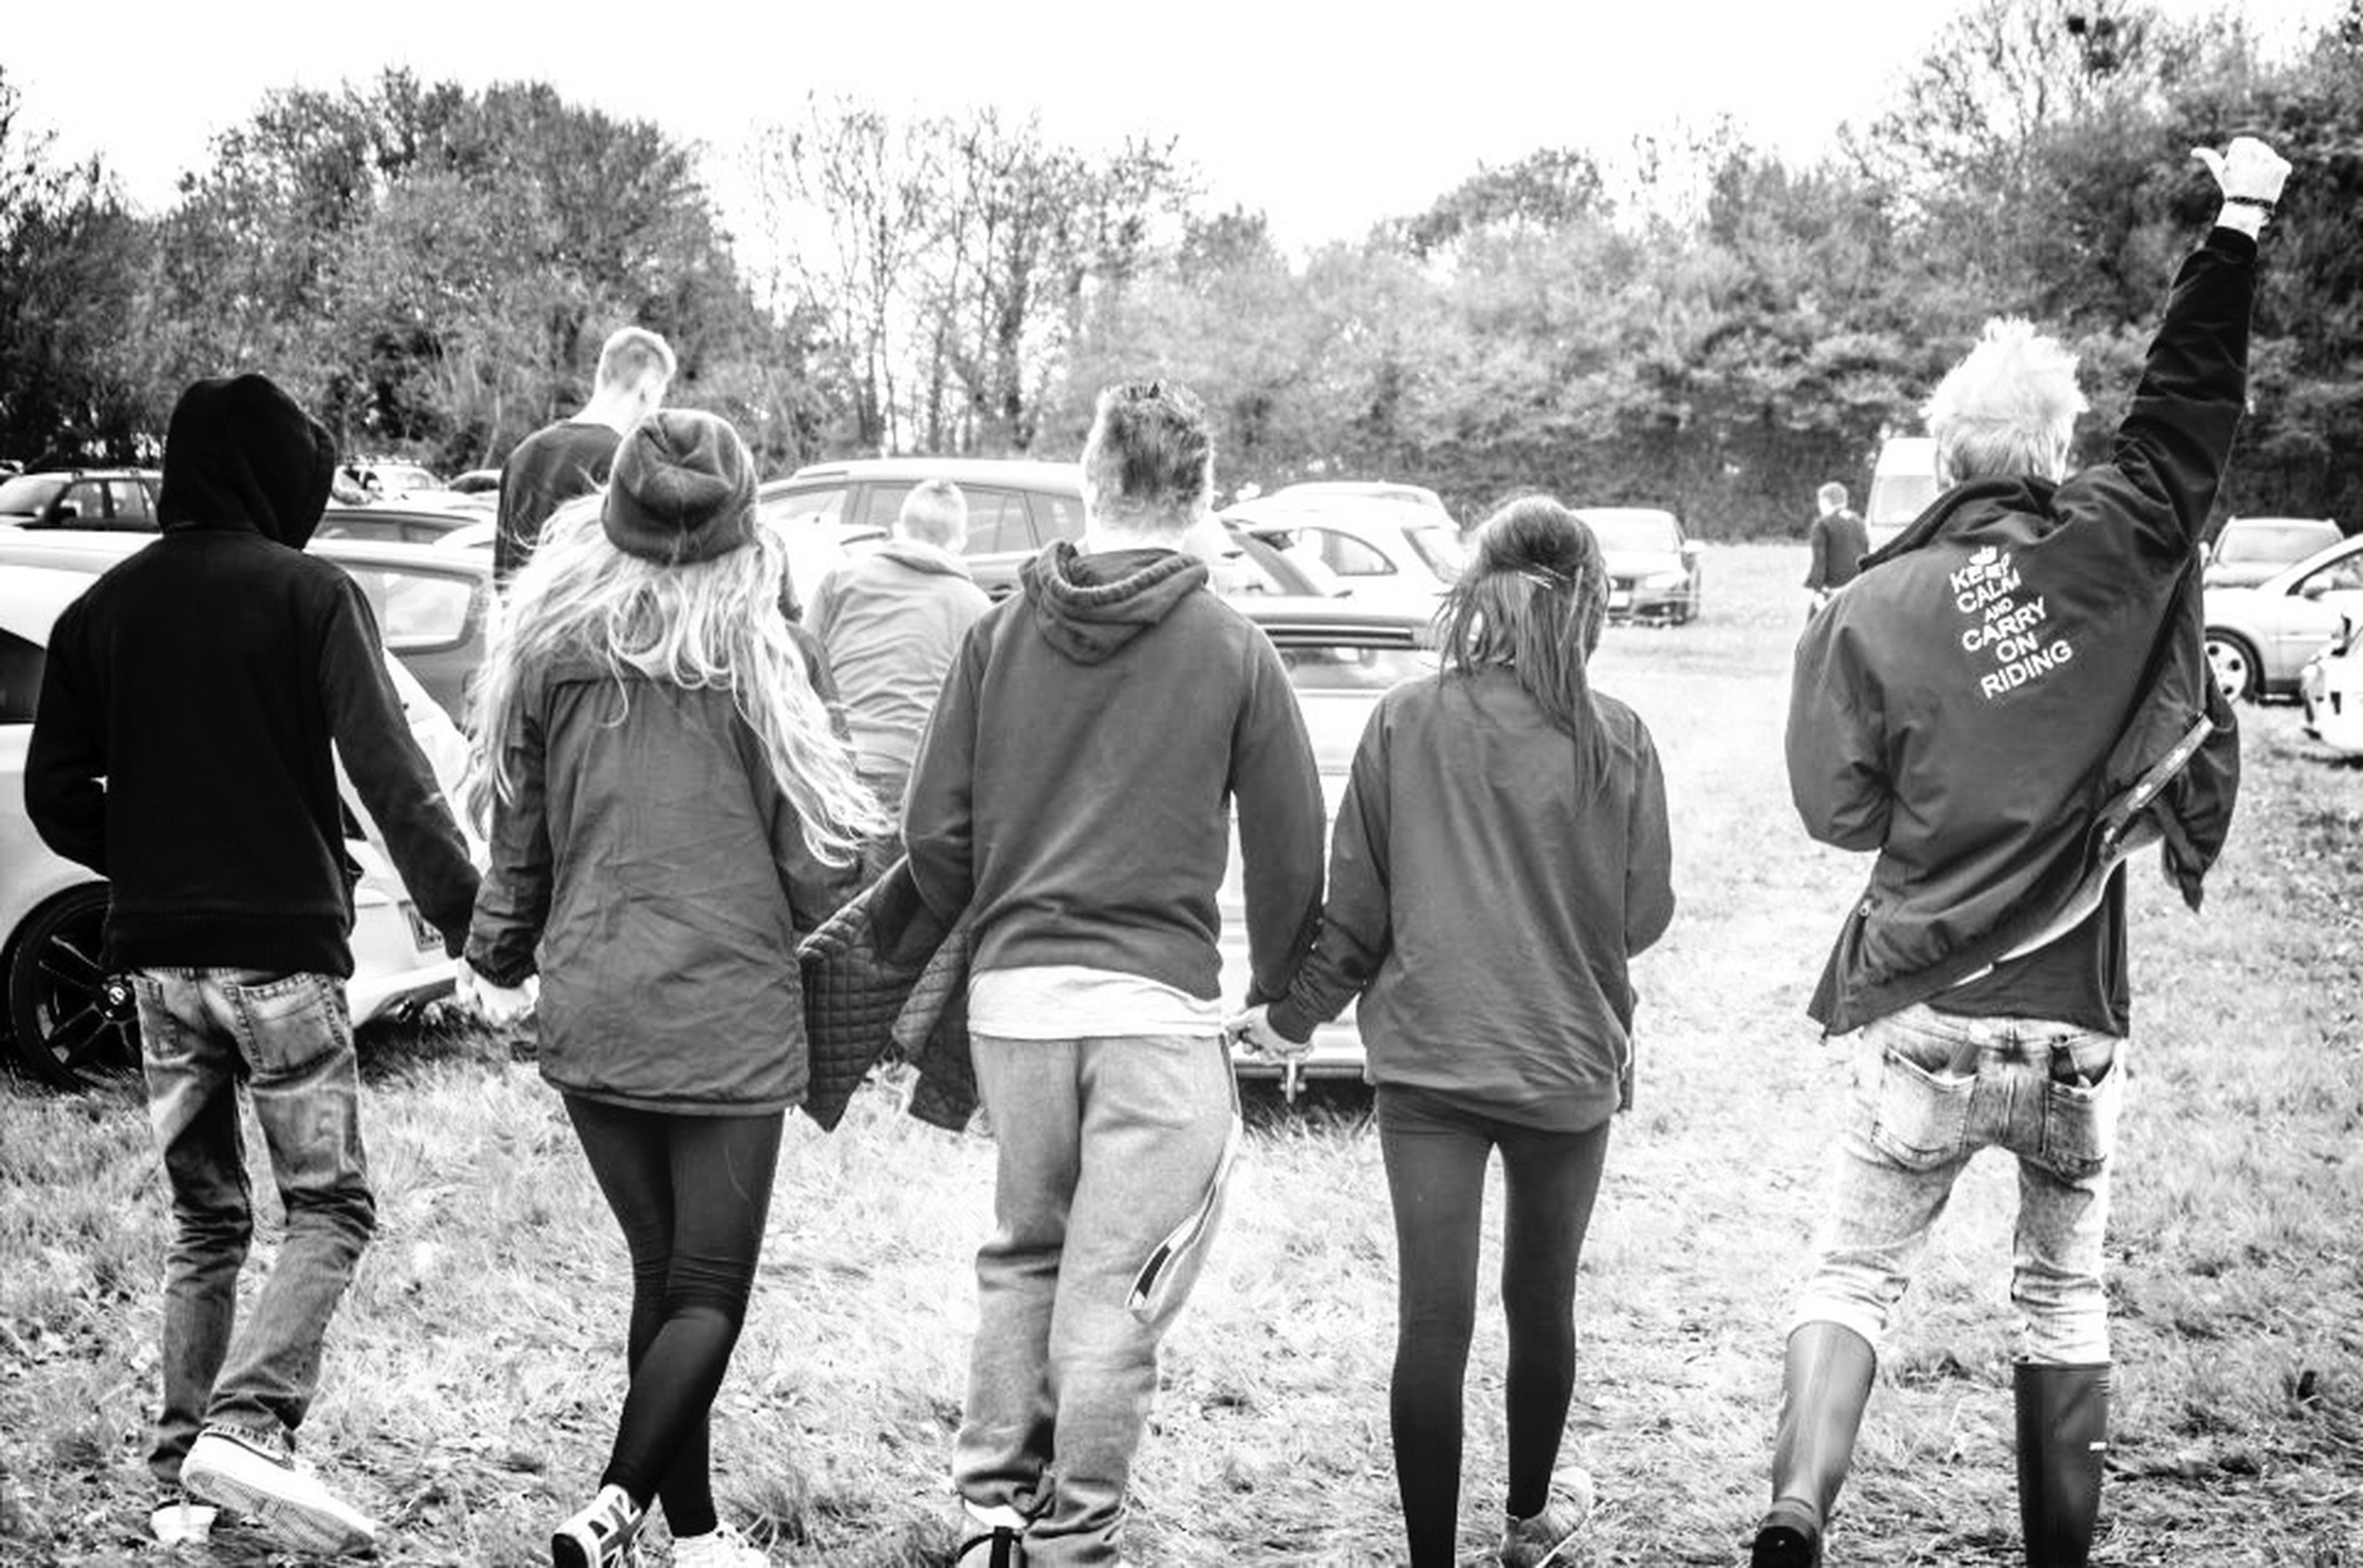 men, lifestyles, leisure activity, togetherness, casual clothing, person, rear view, walking, tree, large group of people, full length, standing, friendship, day, medium group of people, bonding, outdoors, animal themes